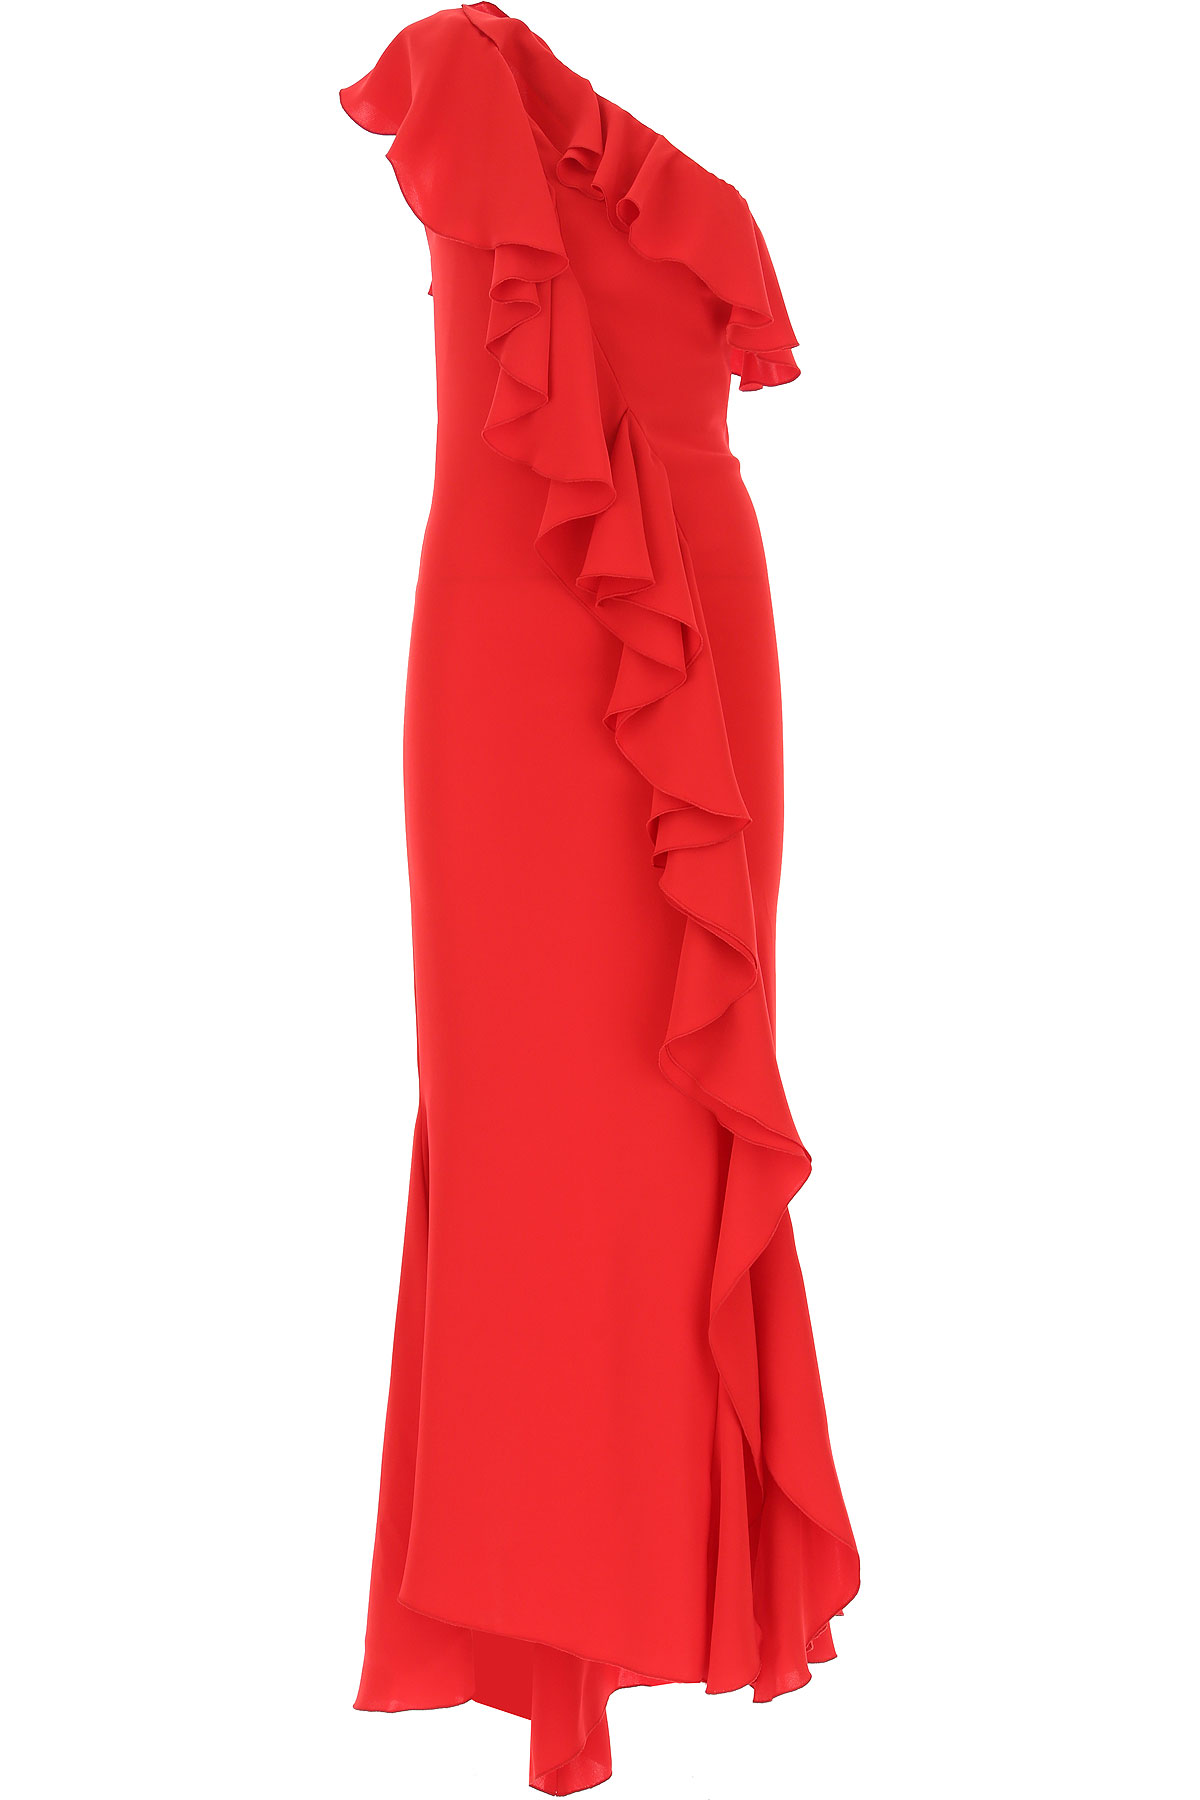 Hanita Dress for Women, Evening Cocktail Party On Sale, Red, polyester, 2019, 2 4 6